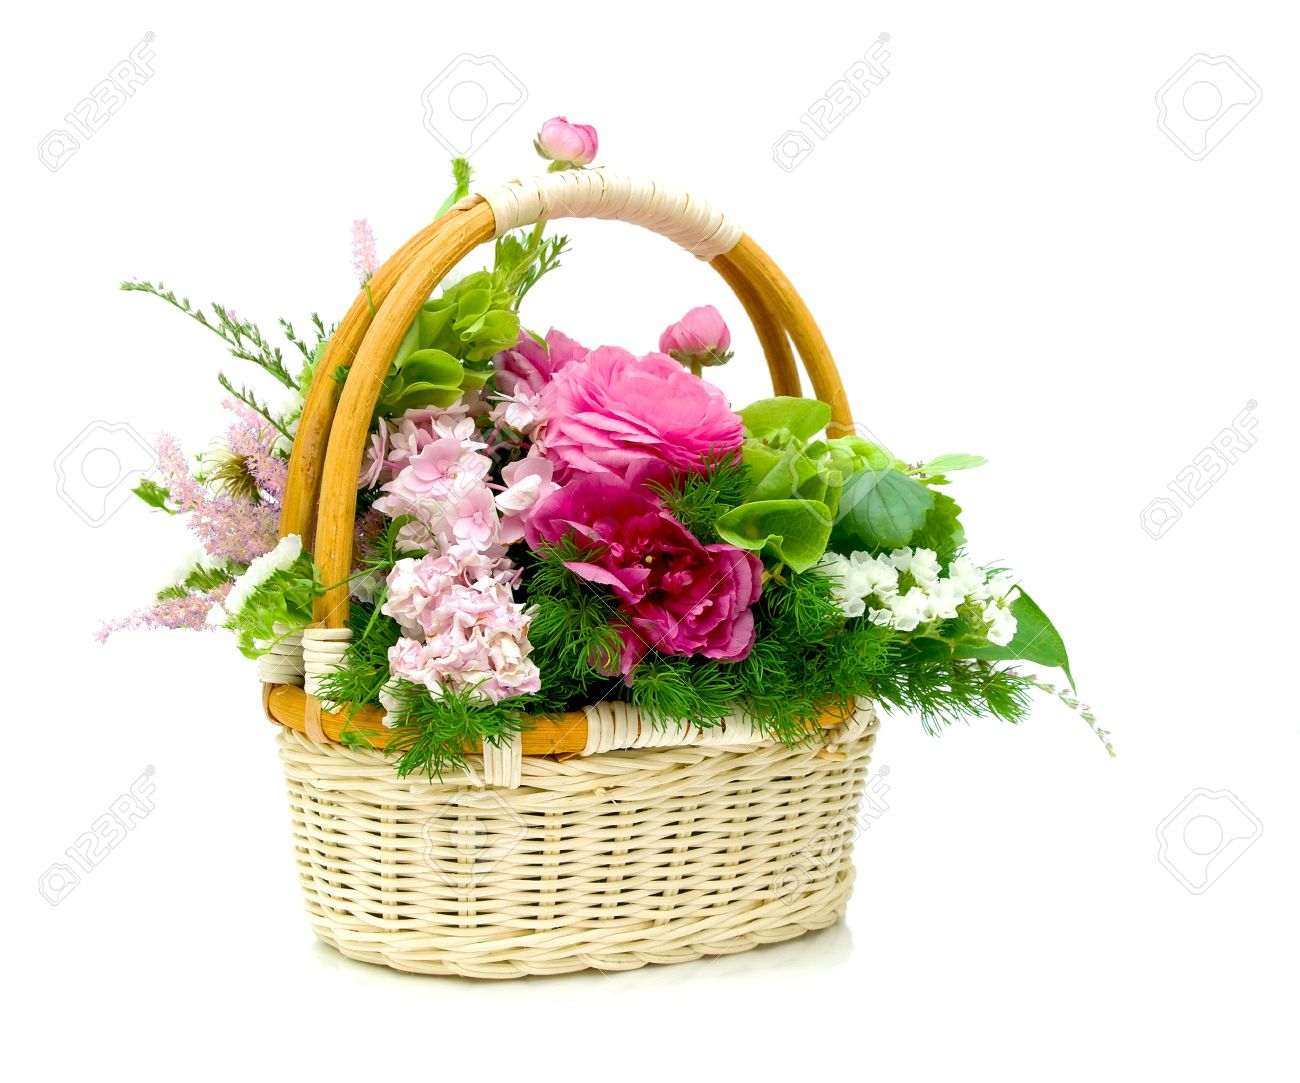 Wicker Basket With Fresh Beautiful Flowers Isolated On White